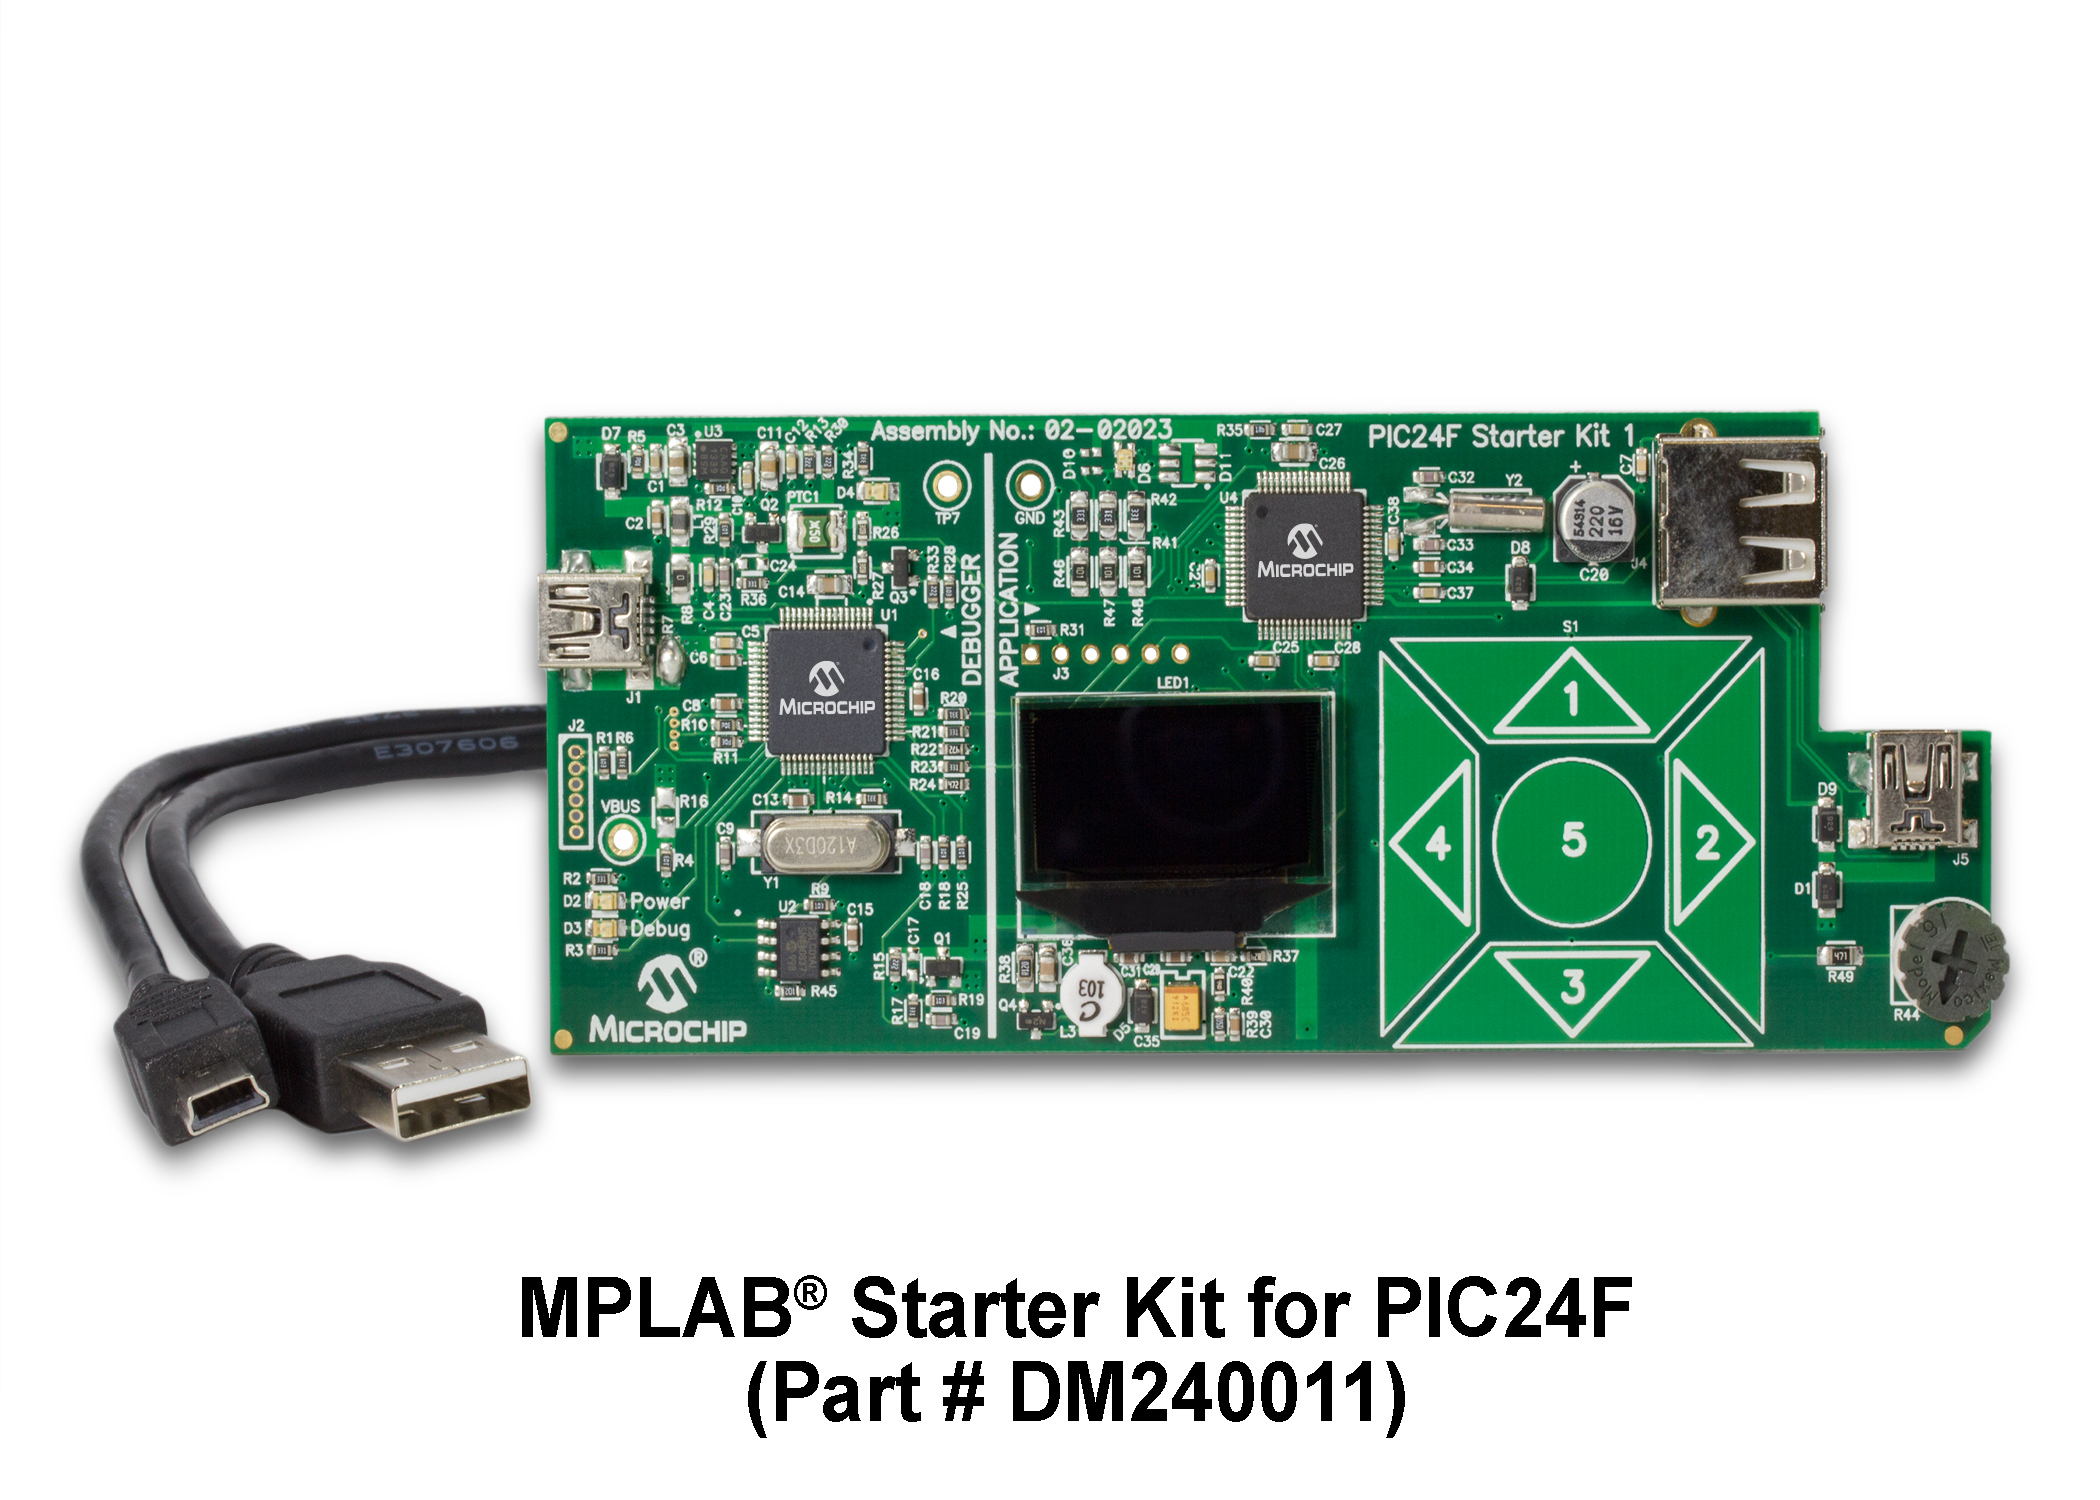 MPLAB Starter Kit for PIC24F MCUs DM240011